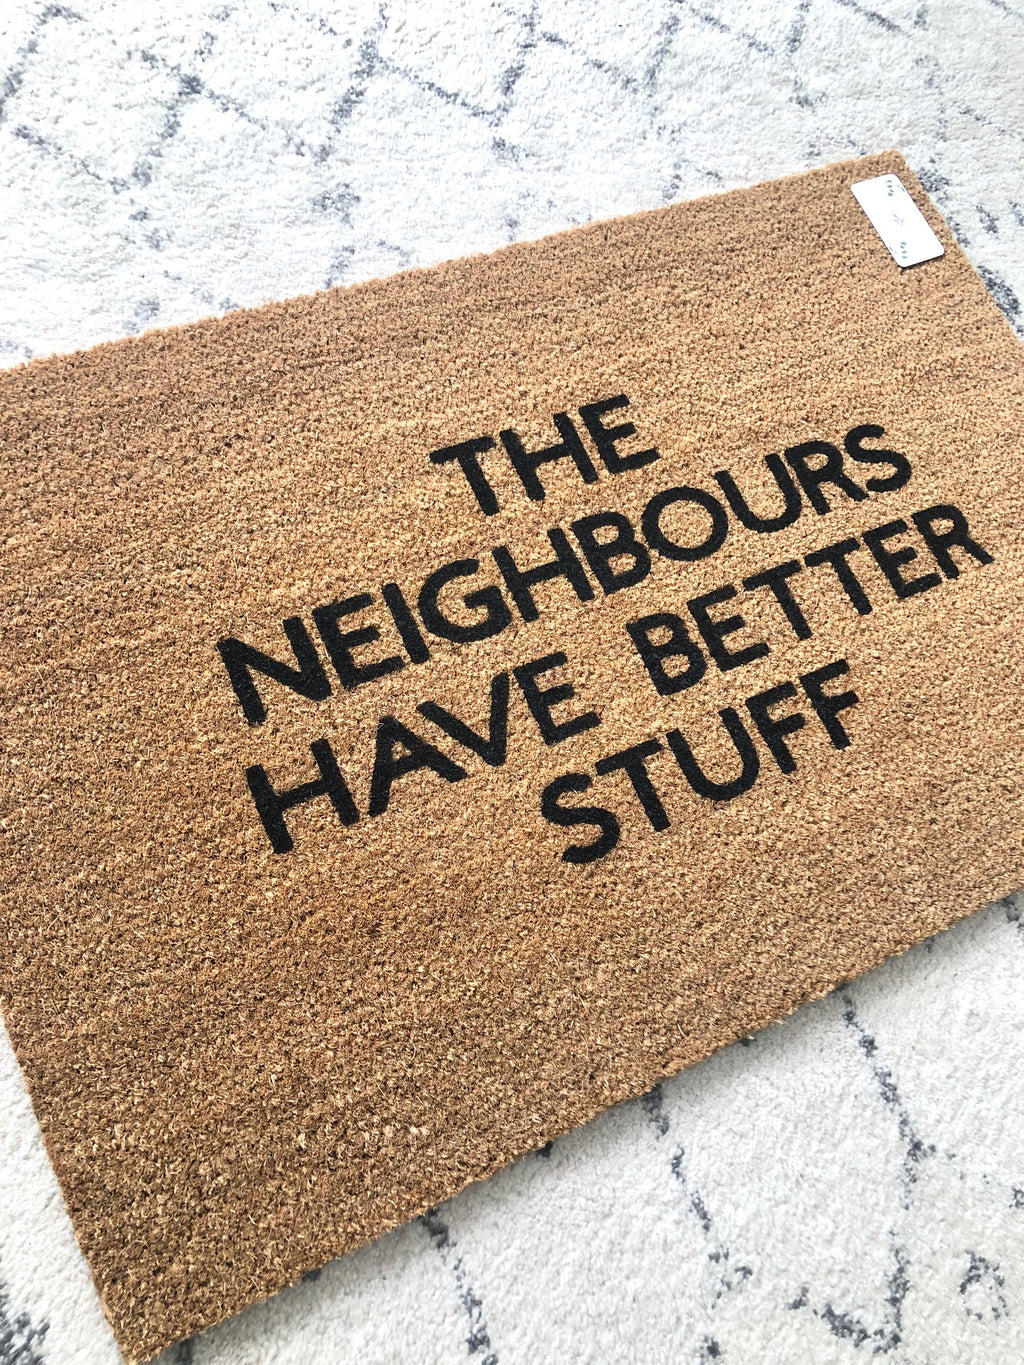 The Neighbours Have Better Stuff